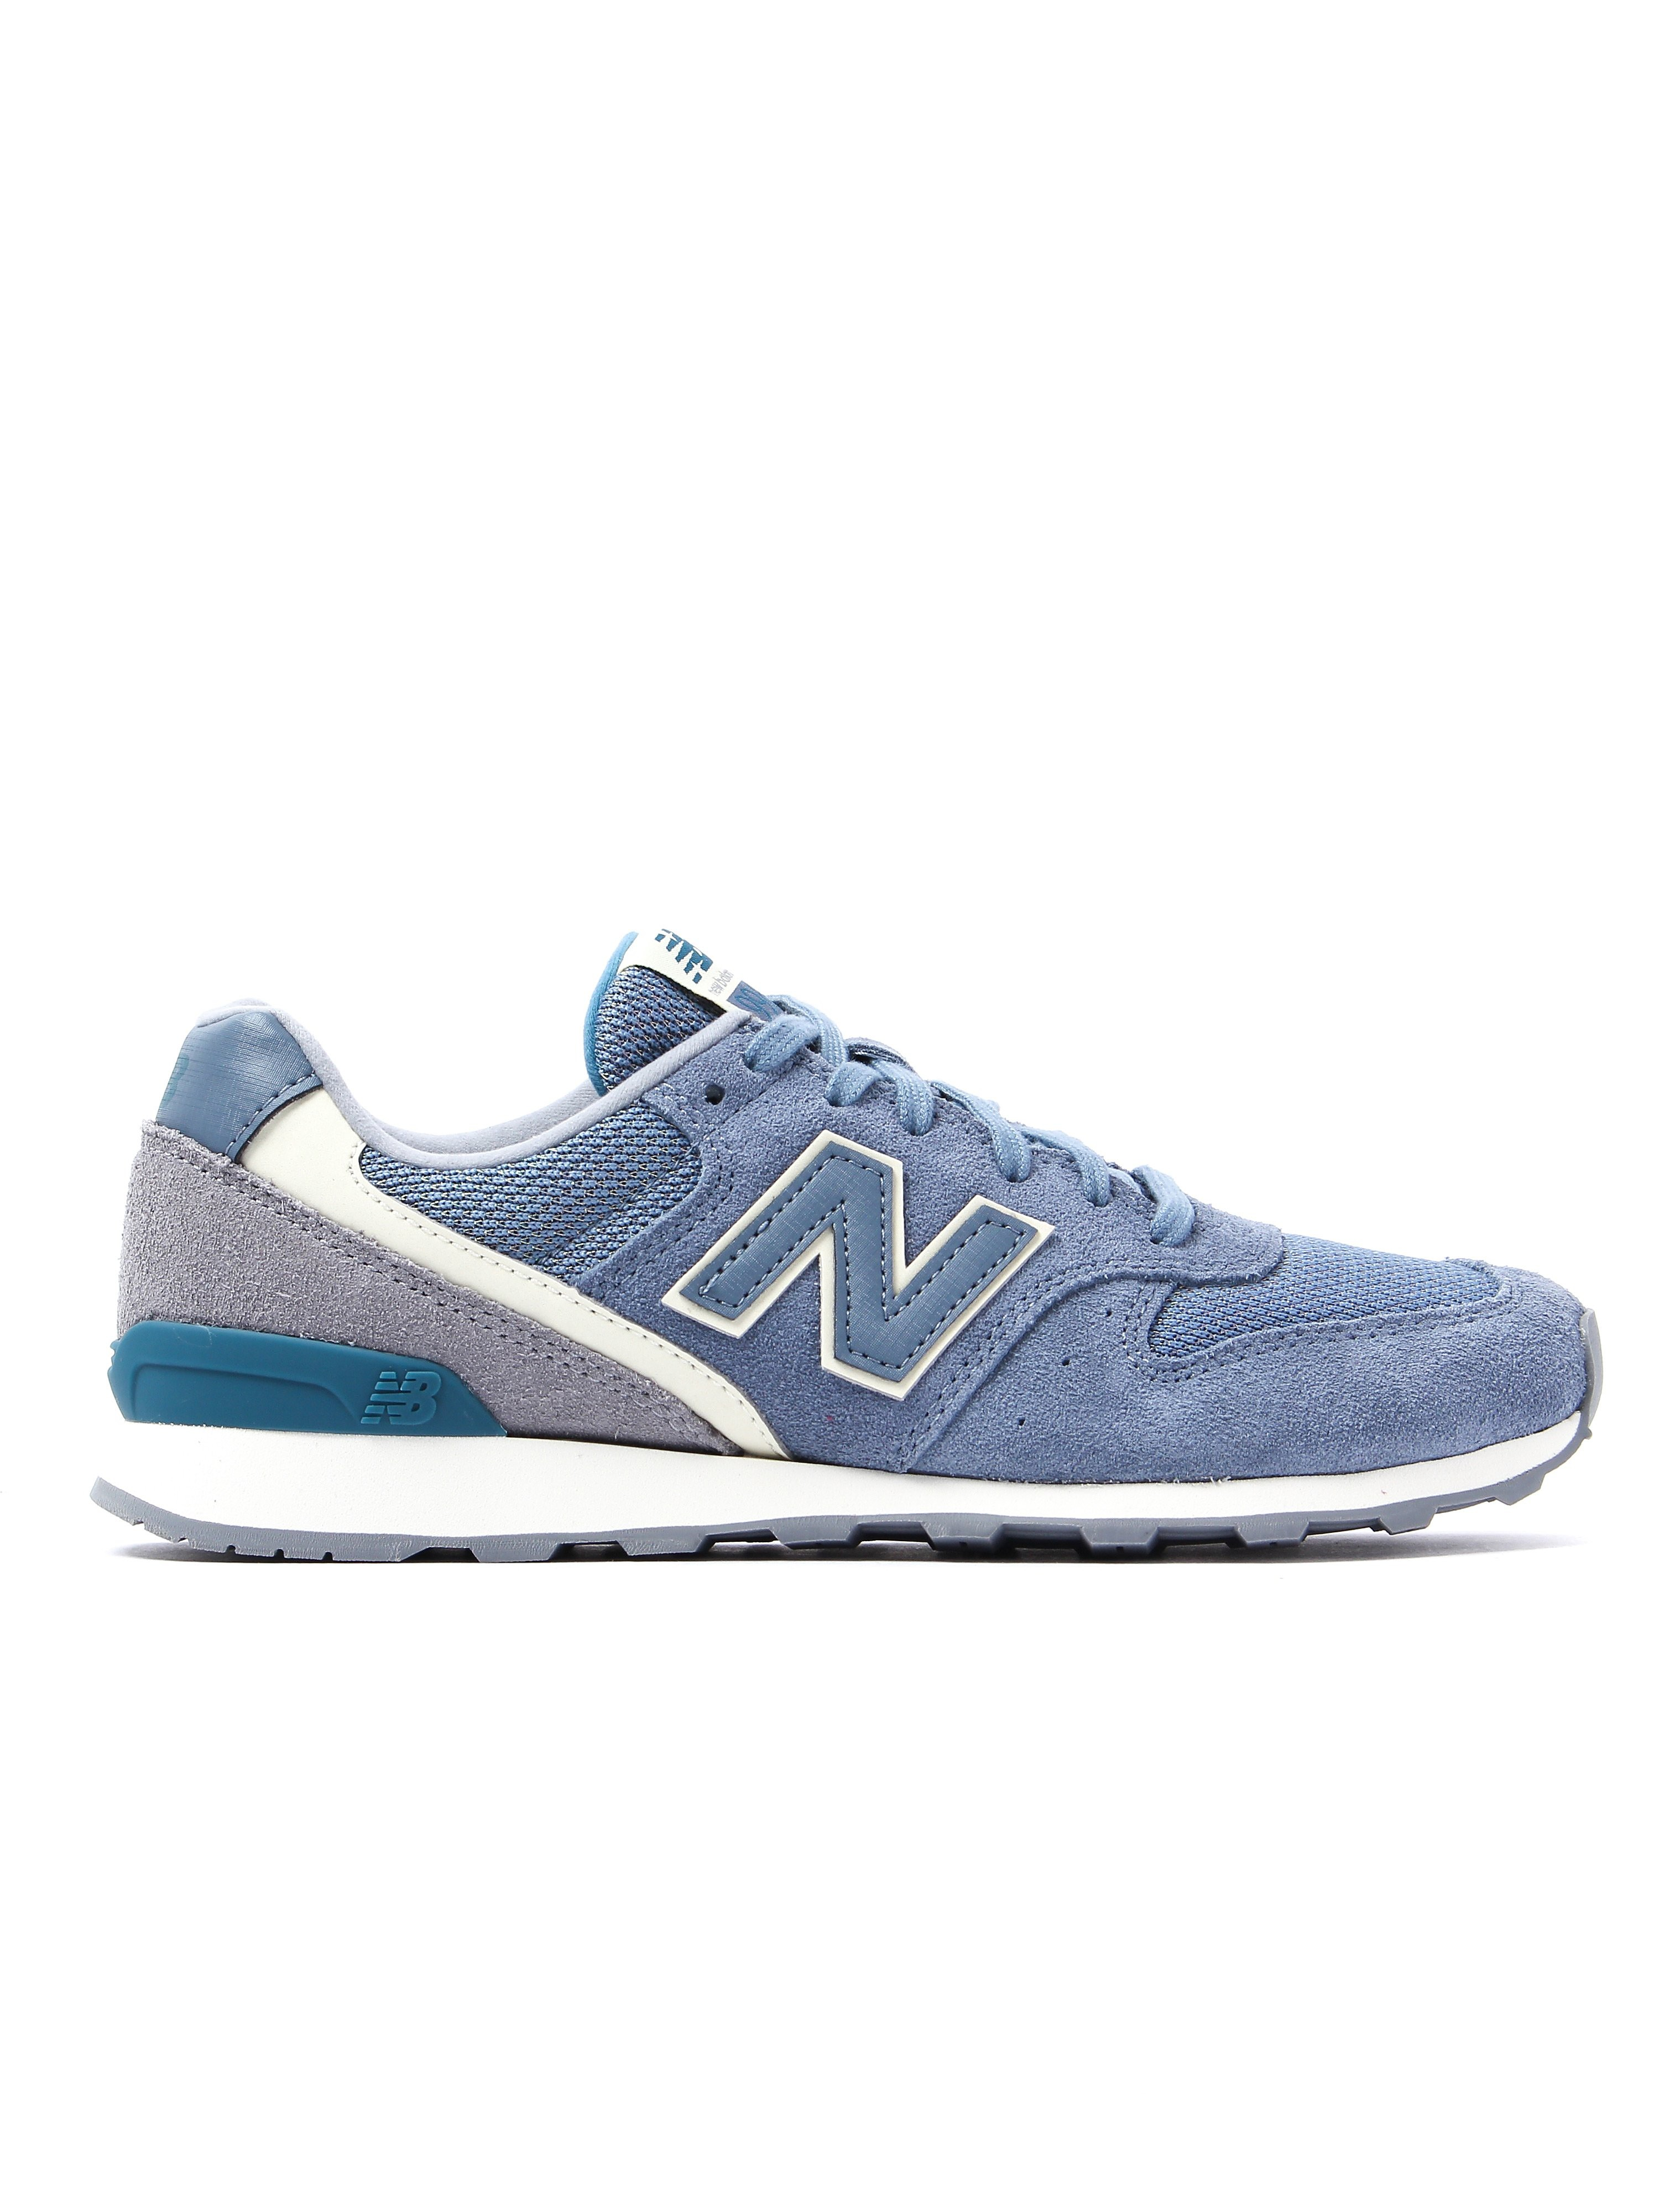 New Balance Women's 996 Low Top Trainers - Light Blue Suede